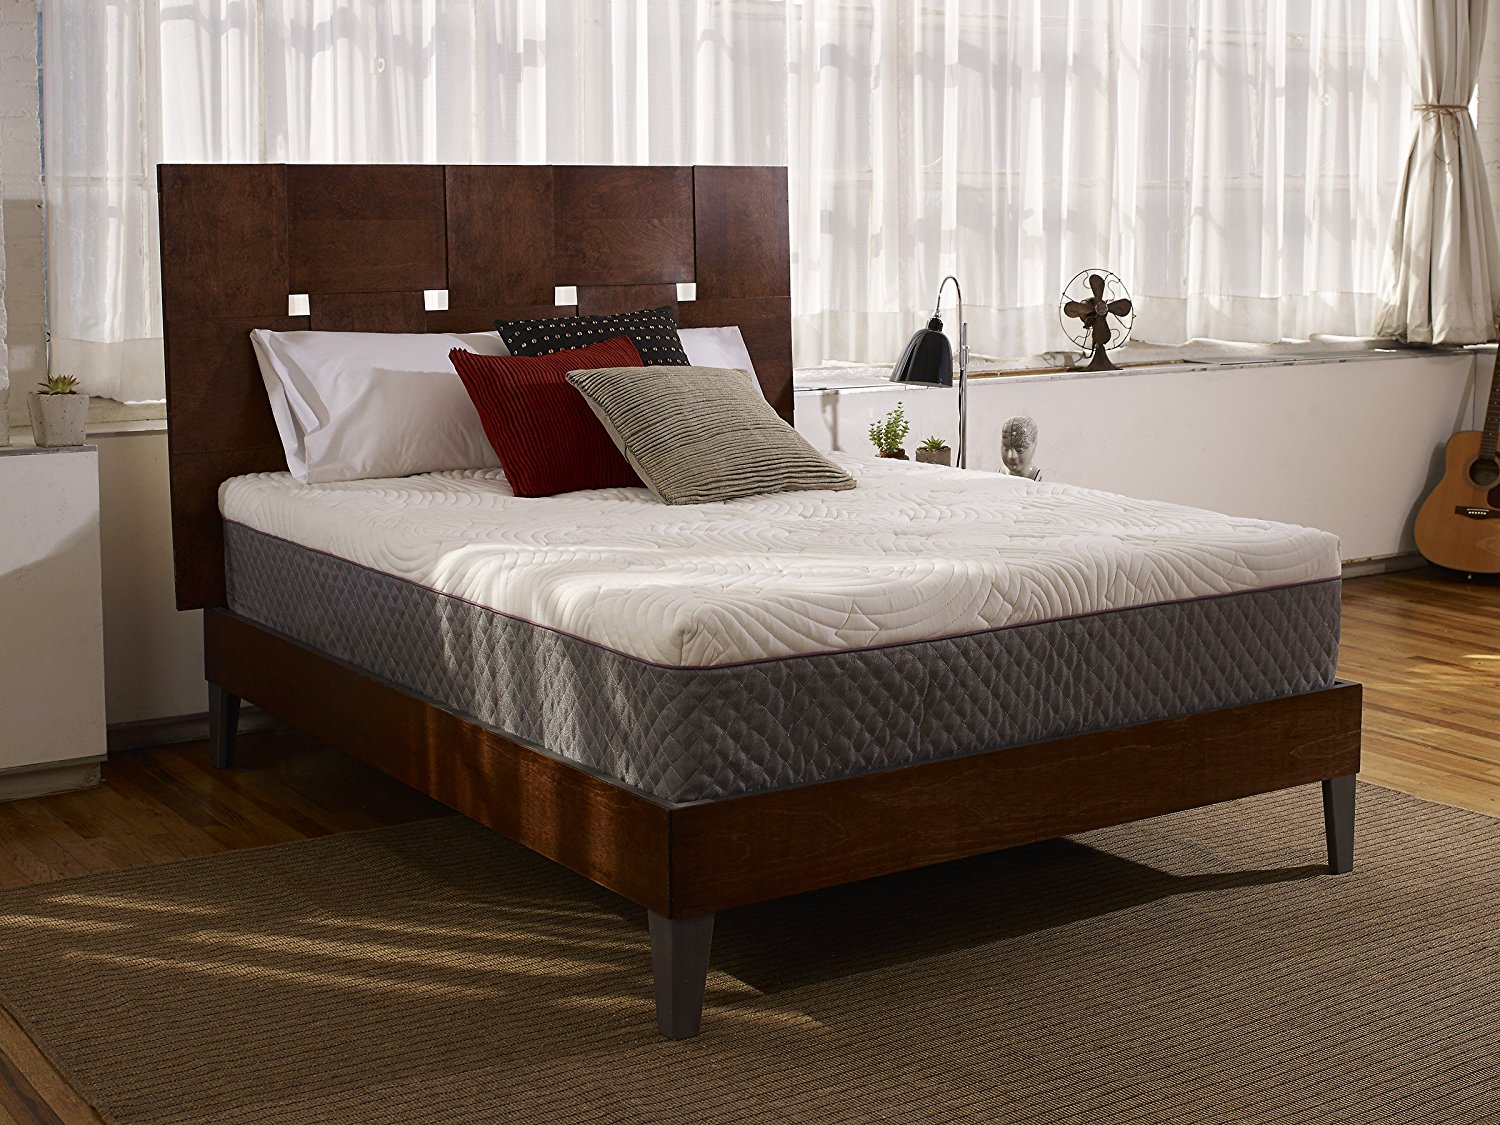 Best Queen Mattress Under 500 In 2018 2019 Best